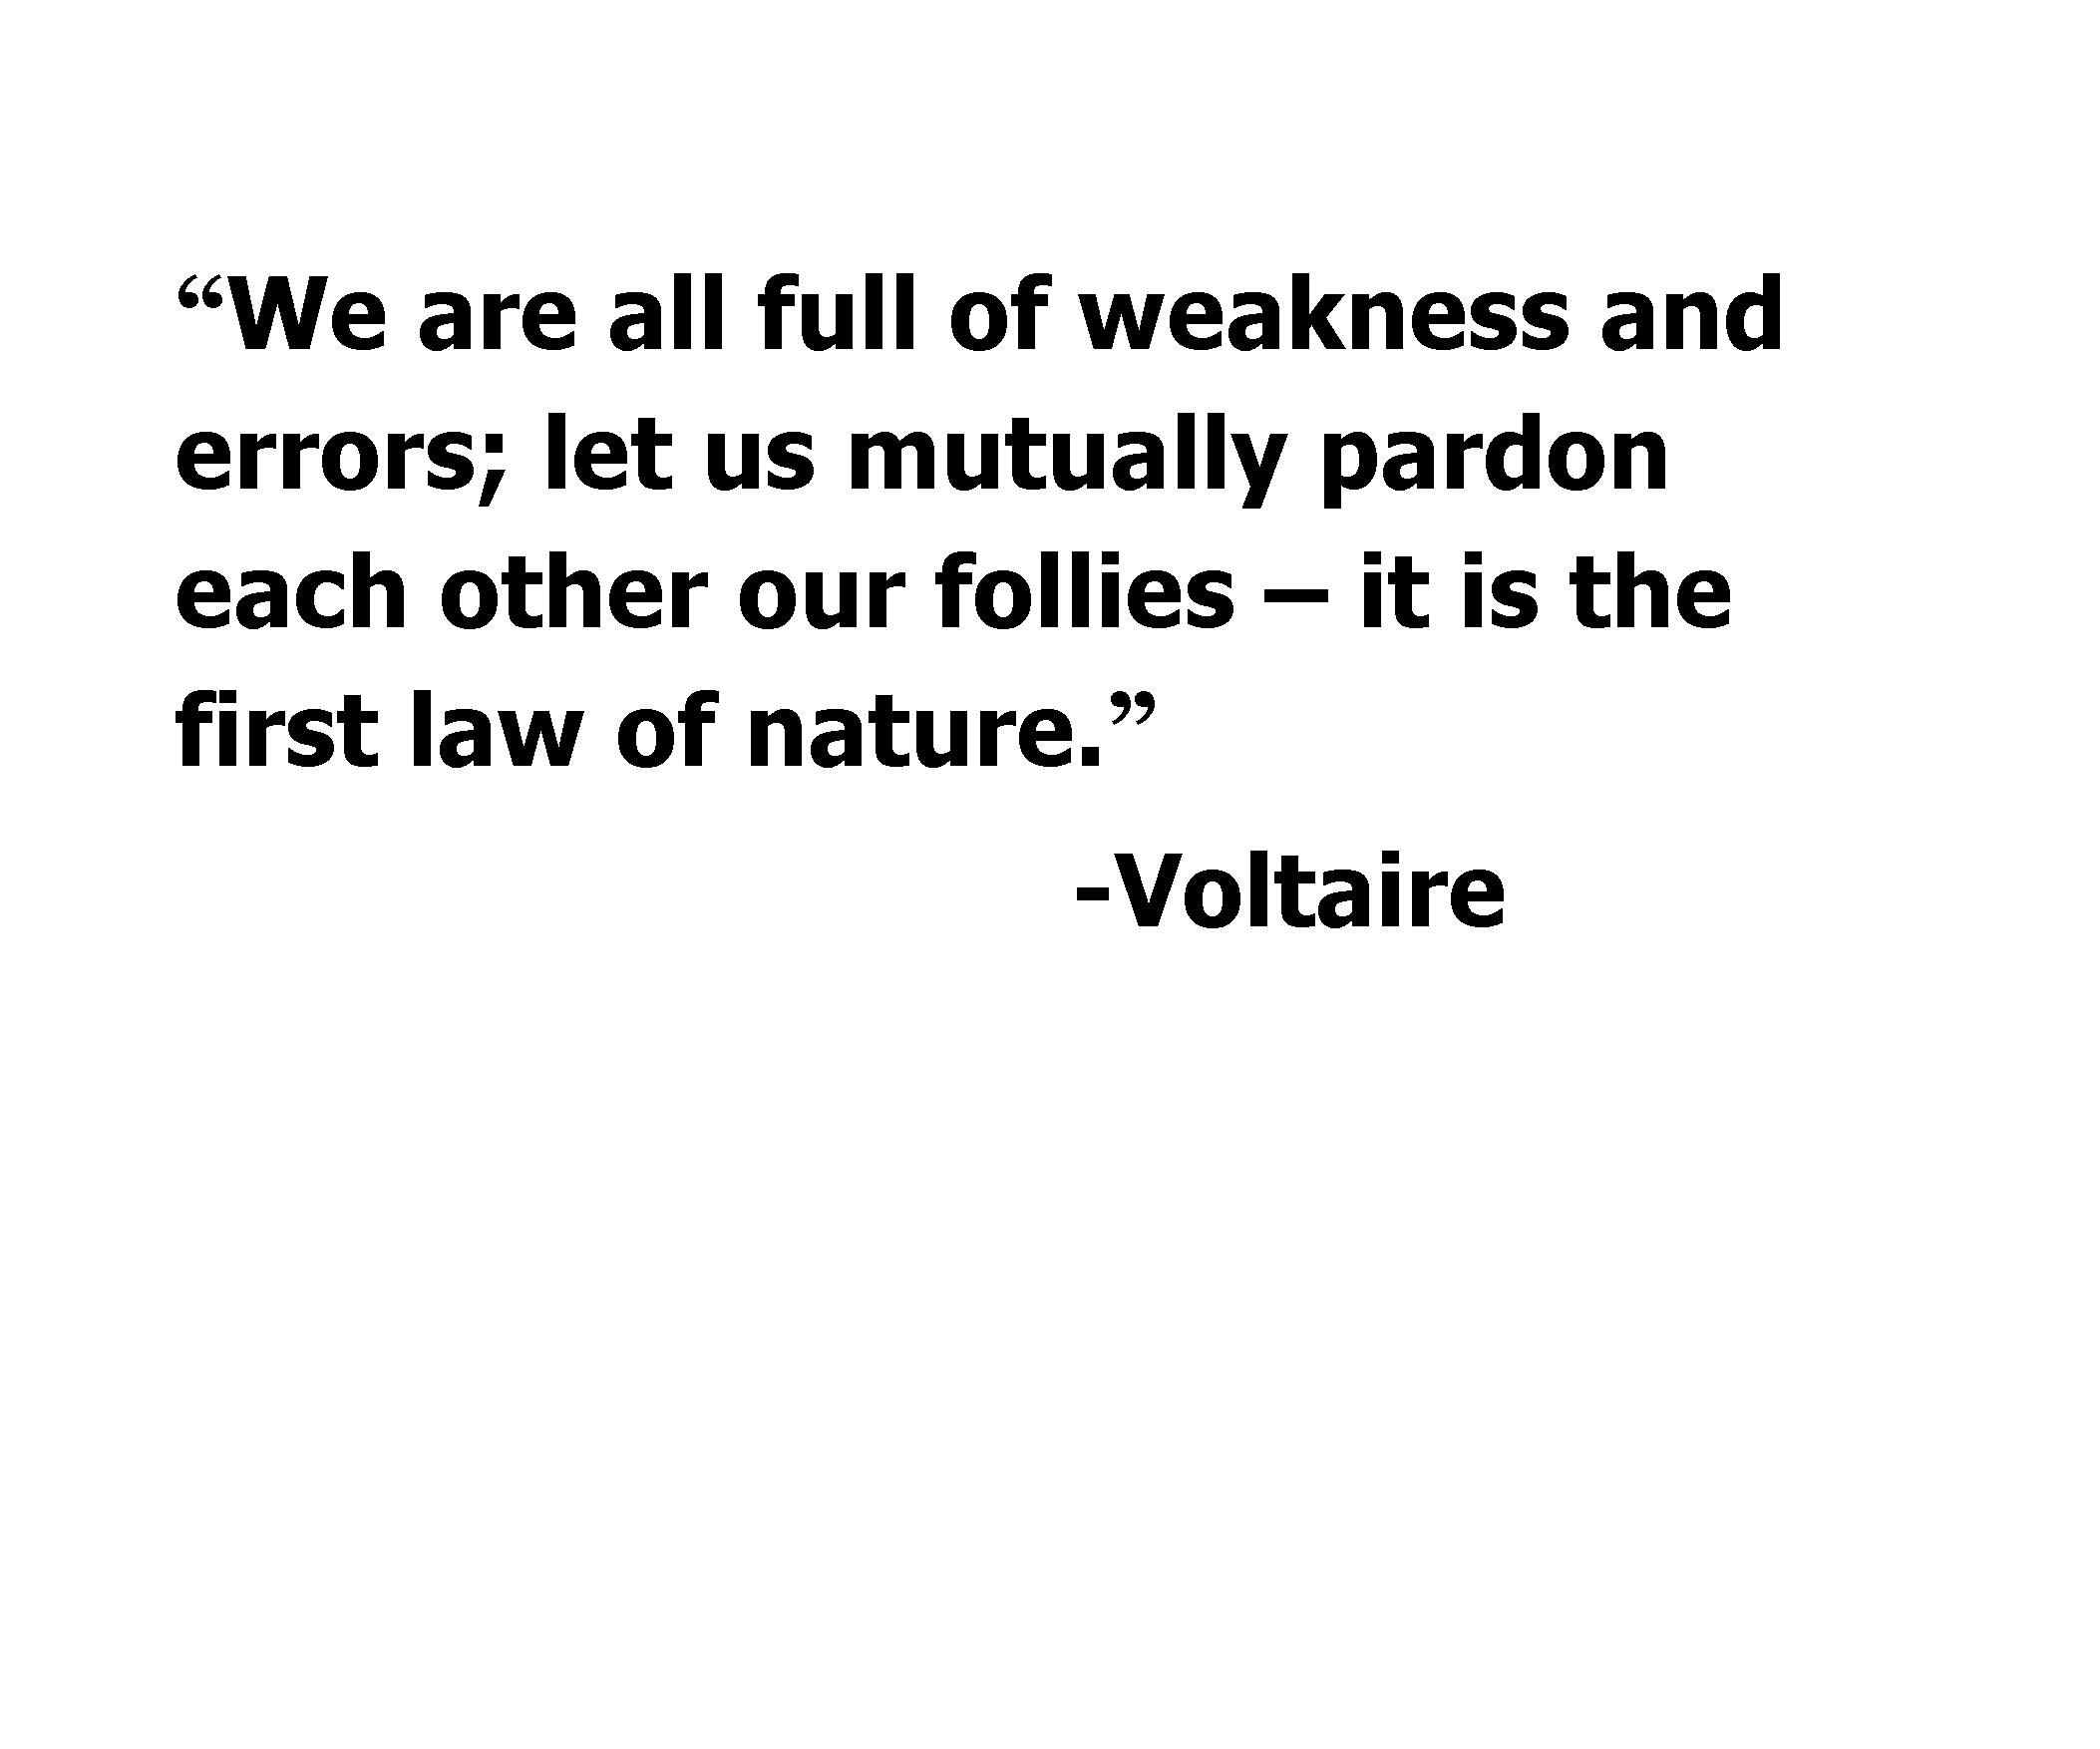 17 best images about people voltaire common sense 17 best images about people voltaire common sense quotations and motivational quotes